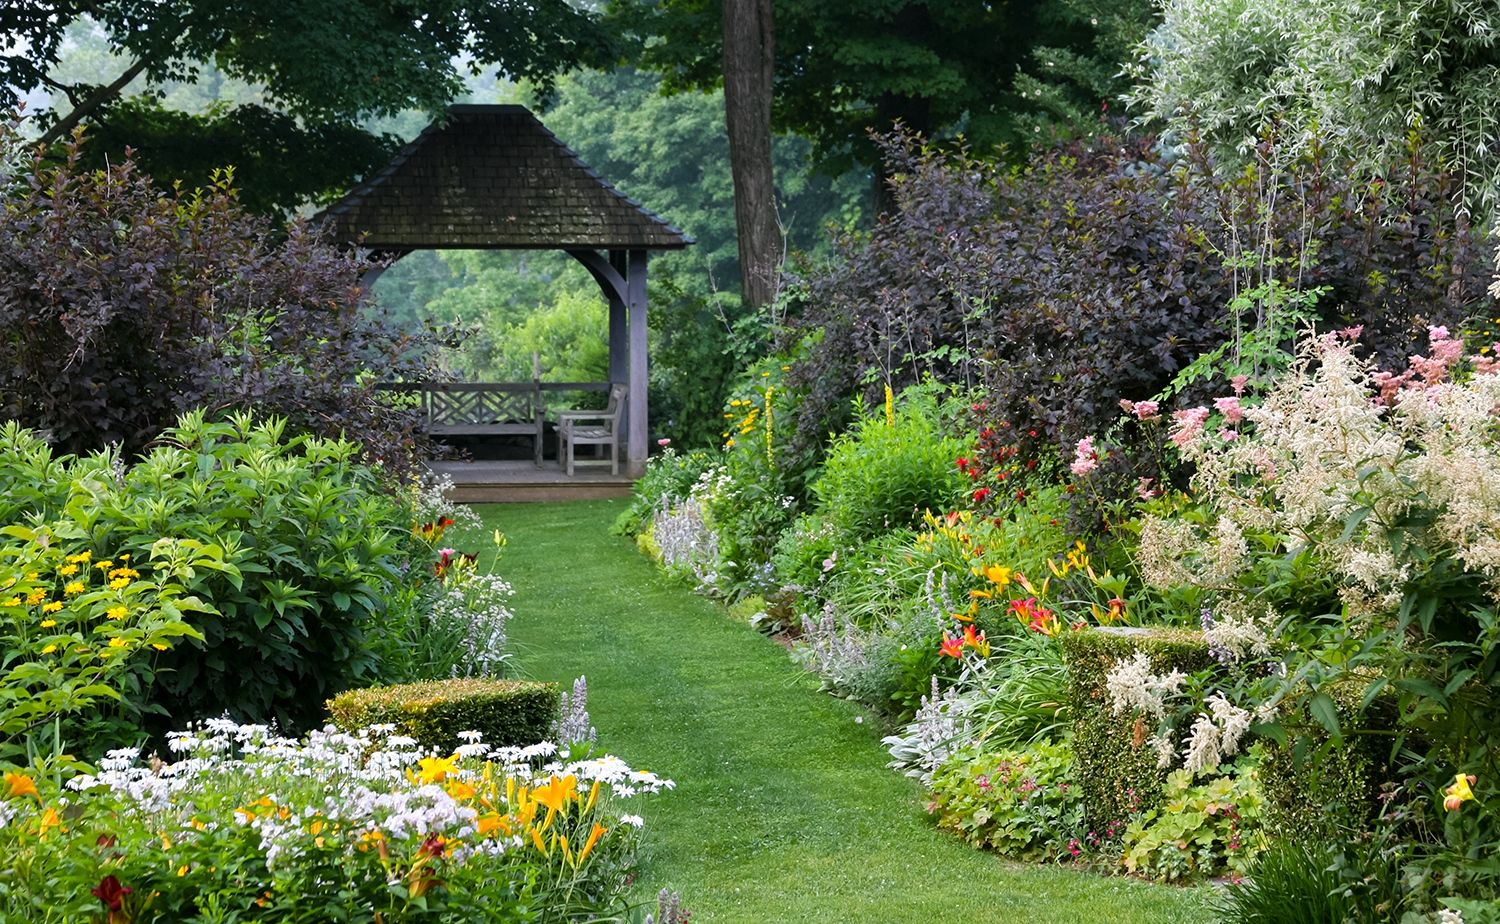 54 Elegant New England Flower Garden Ideas Garden design